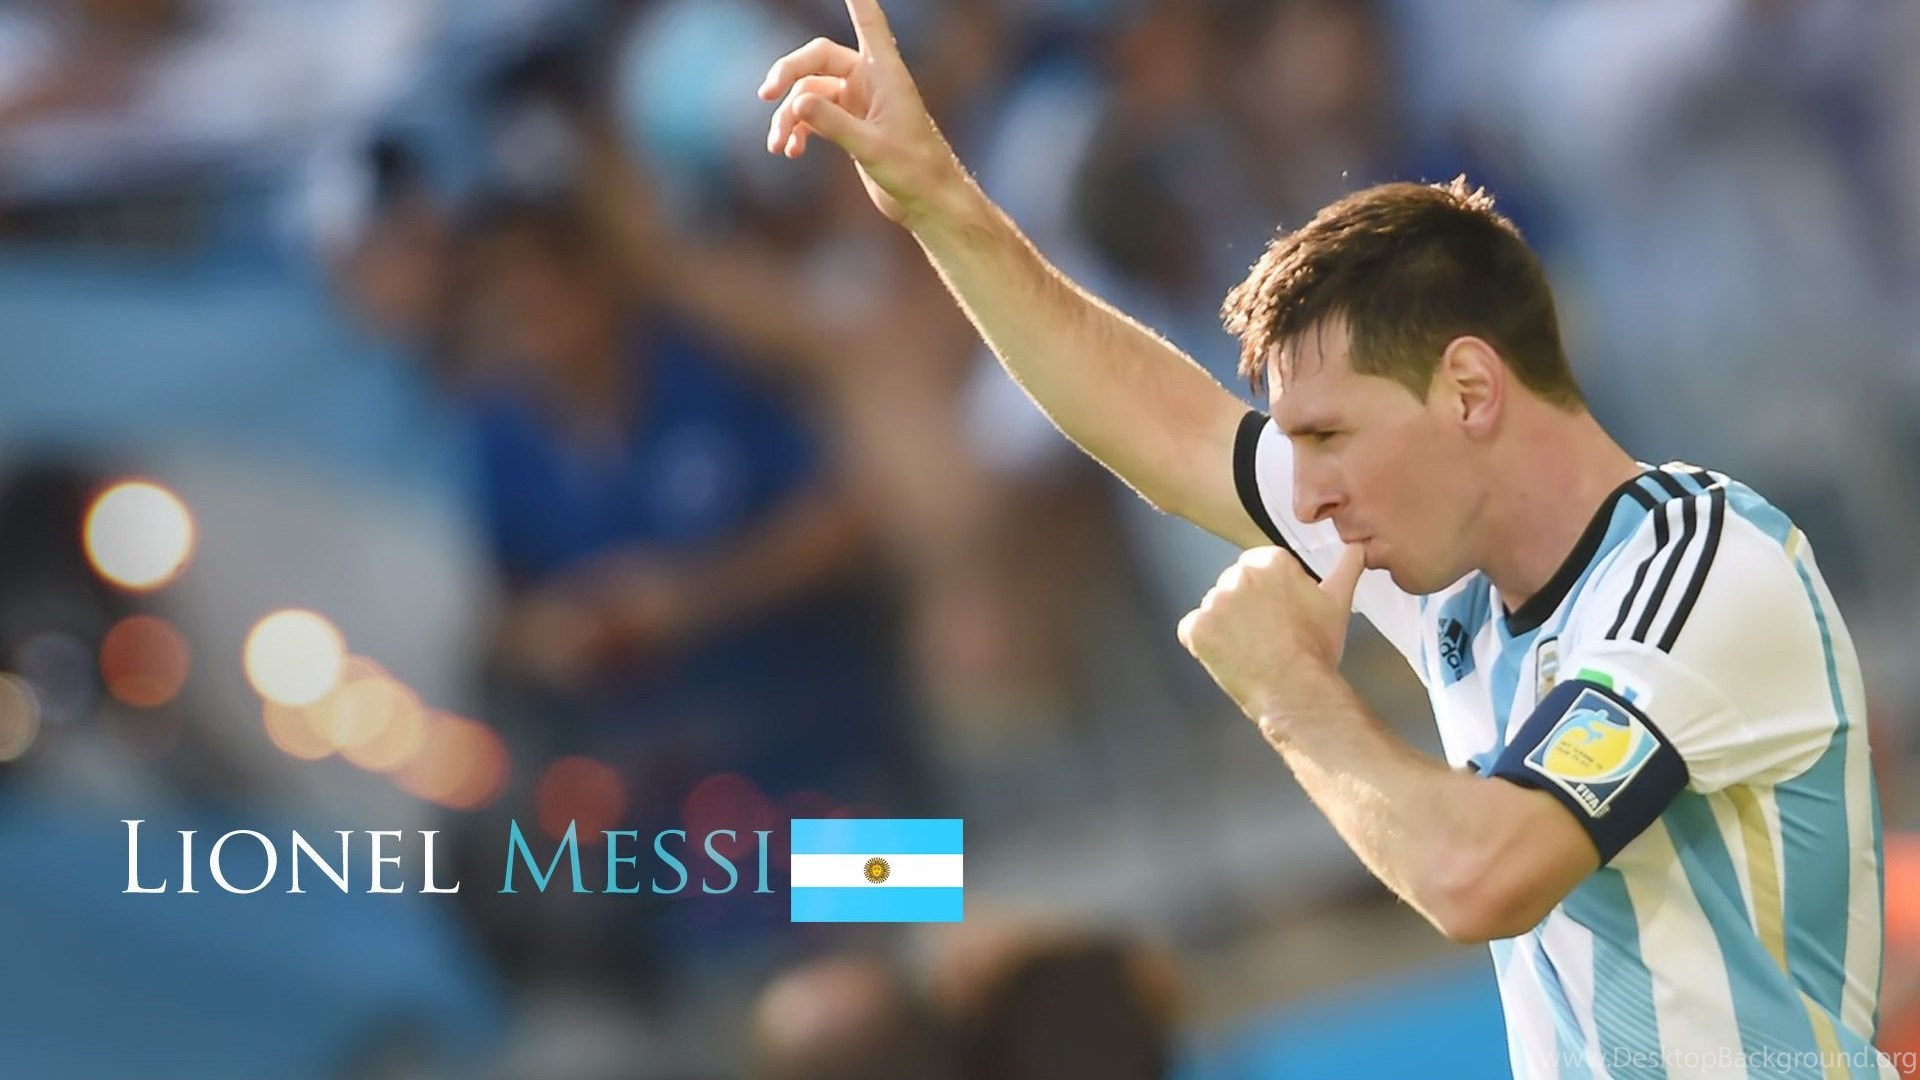 Argentina 2 Lionel Messi 2015 2016 Computer Wallpapers Hd